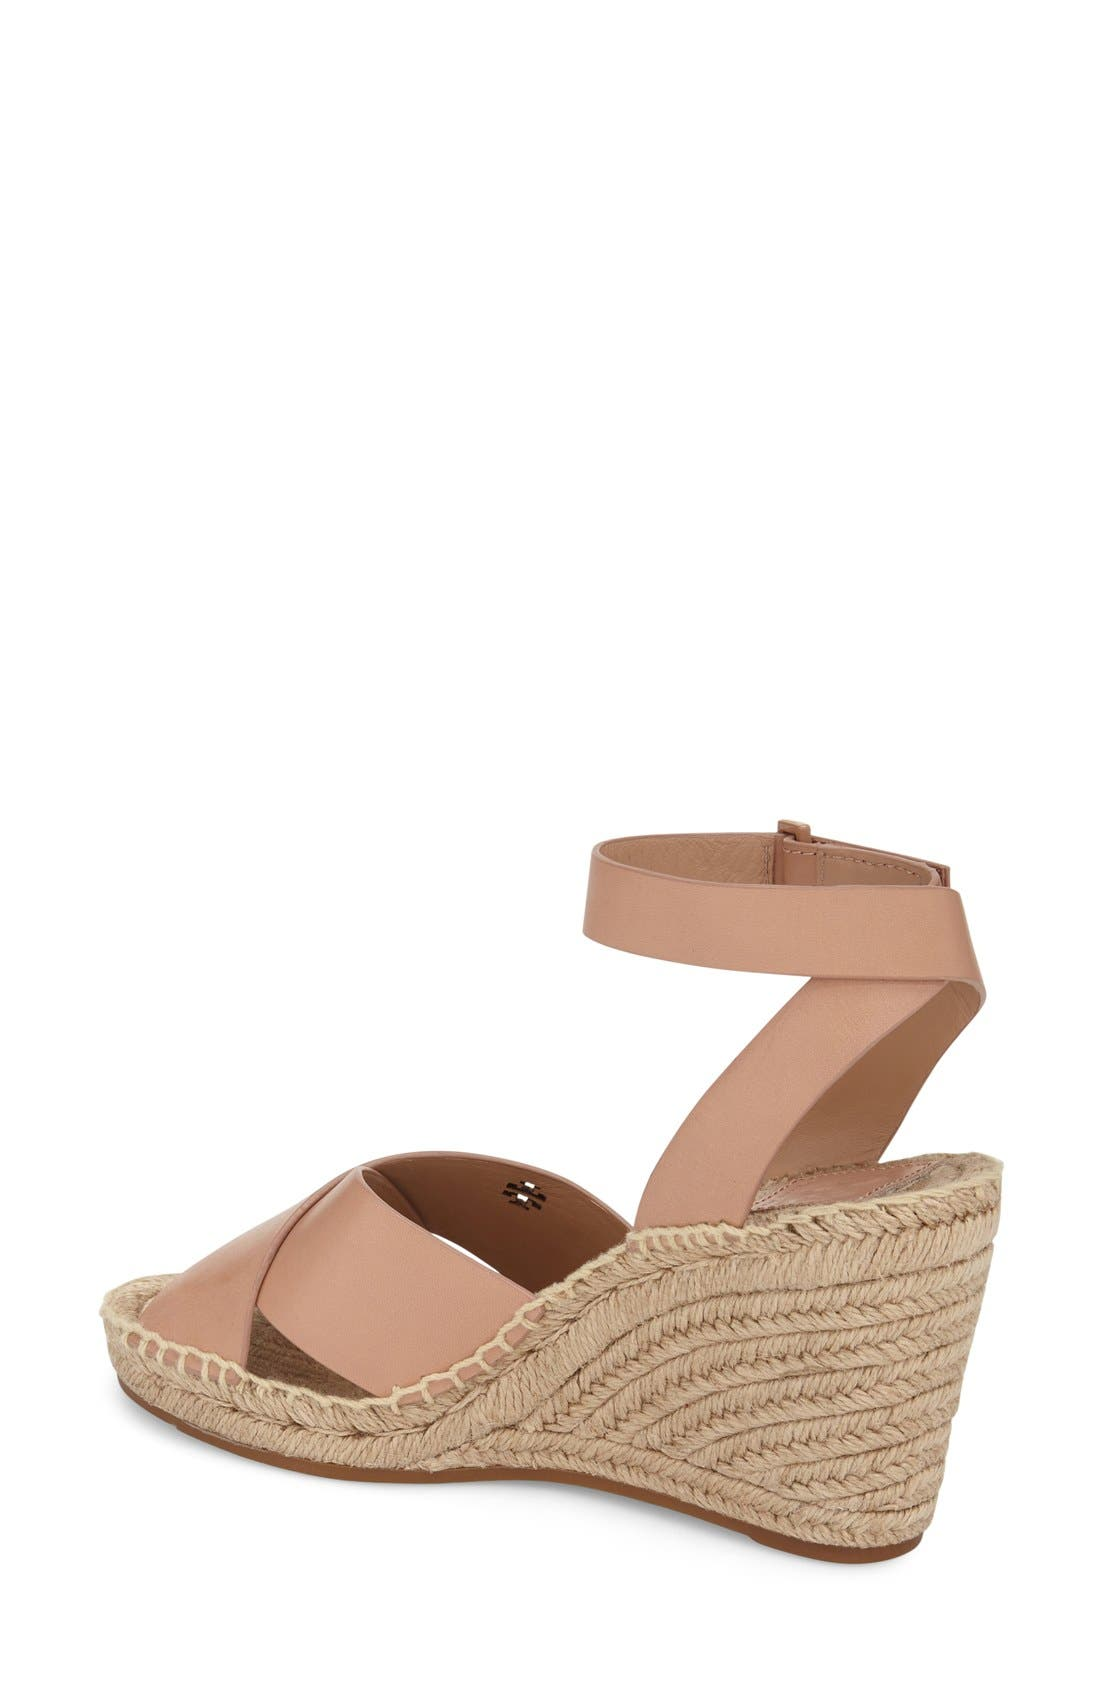 Alternate Image 2  - Tory Burch 'Bima' Espadrille Wedge (Women)